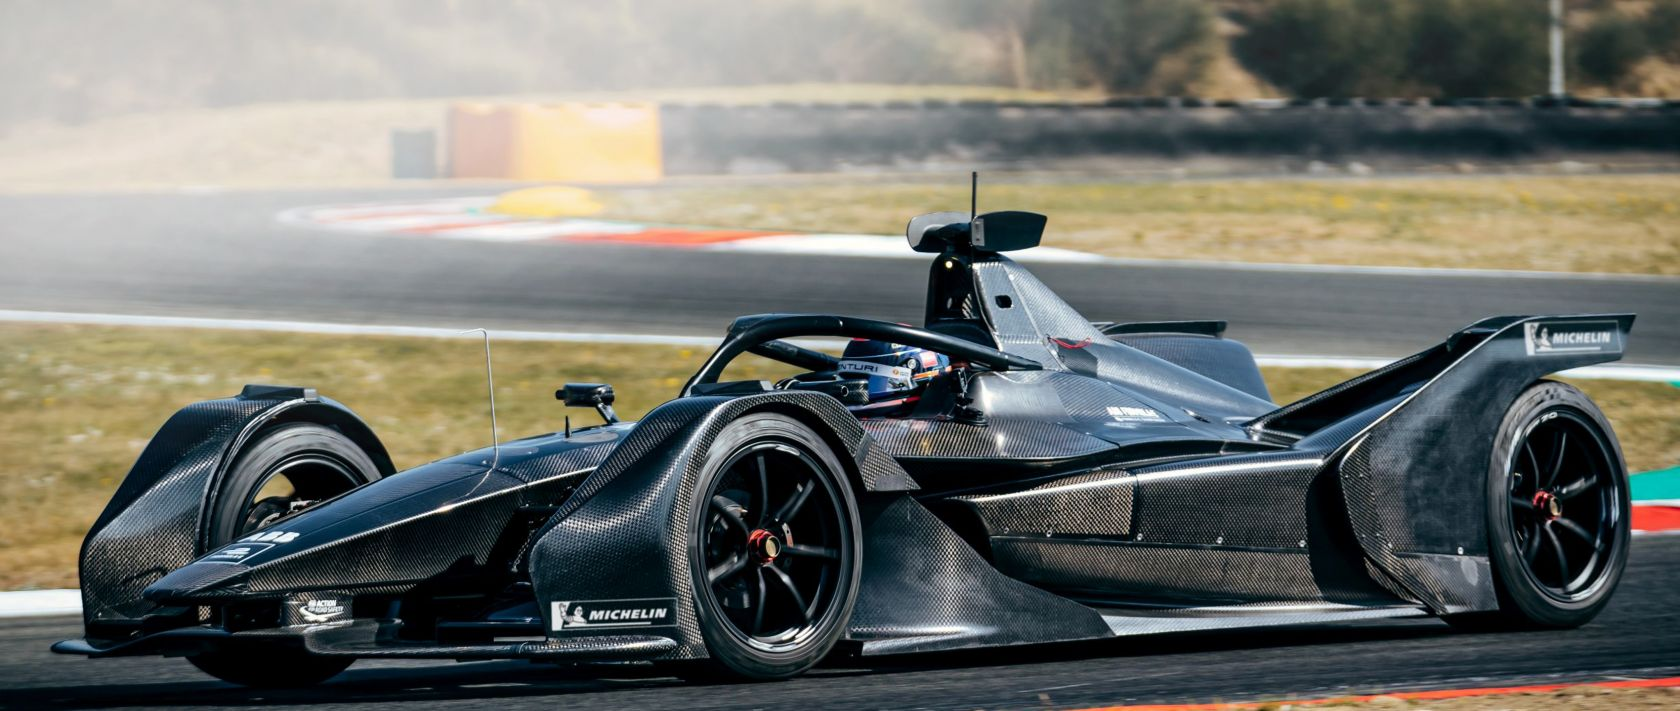 The Mercedes-Benz EQ Silver Arrow 01 during a series of test drives in Varano (Italy) in April 2019 for the preparation of the Formula E in November 2019.